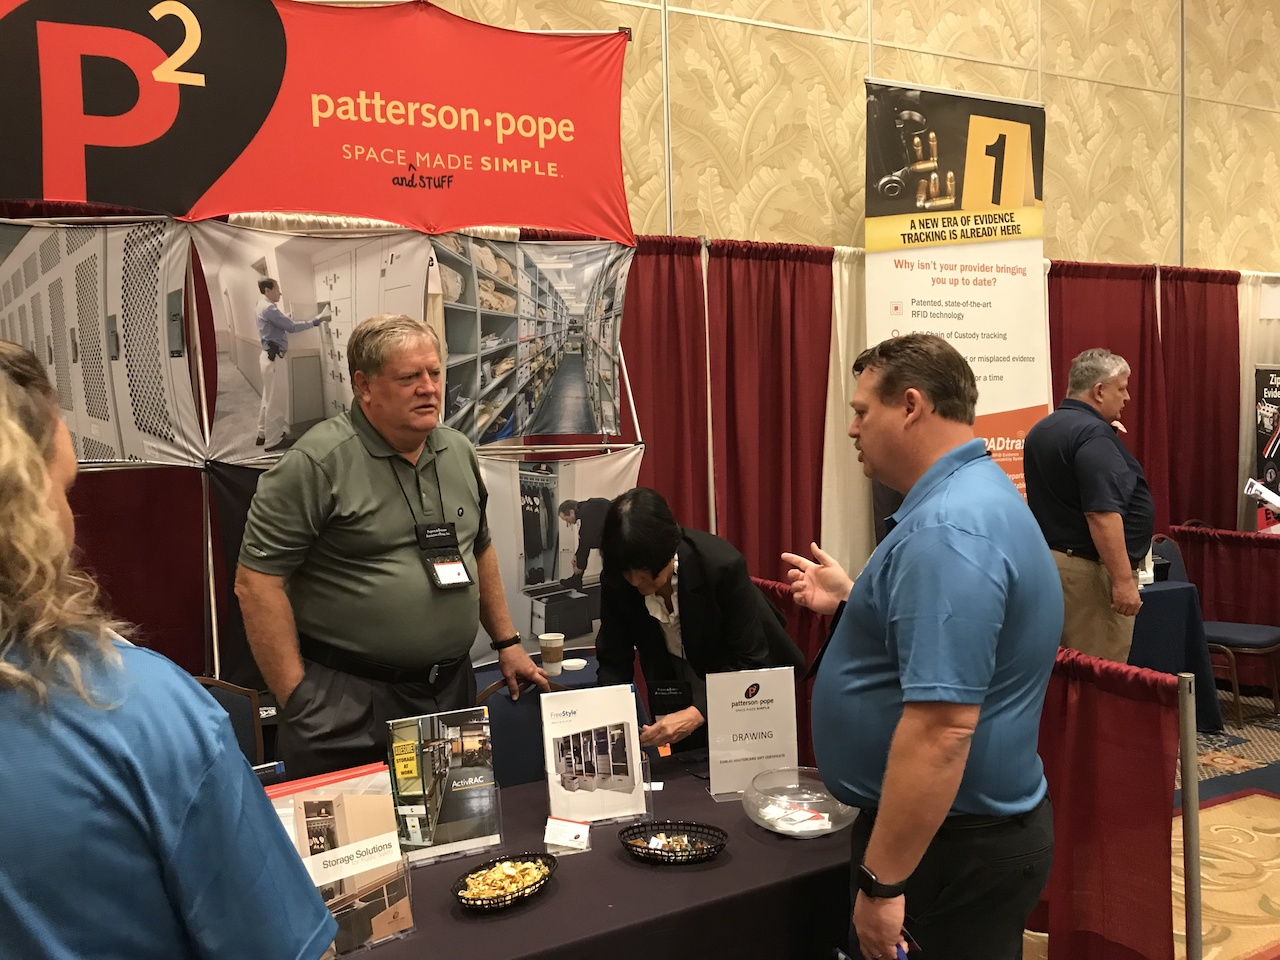 patterson-pope-vendor-booth-3